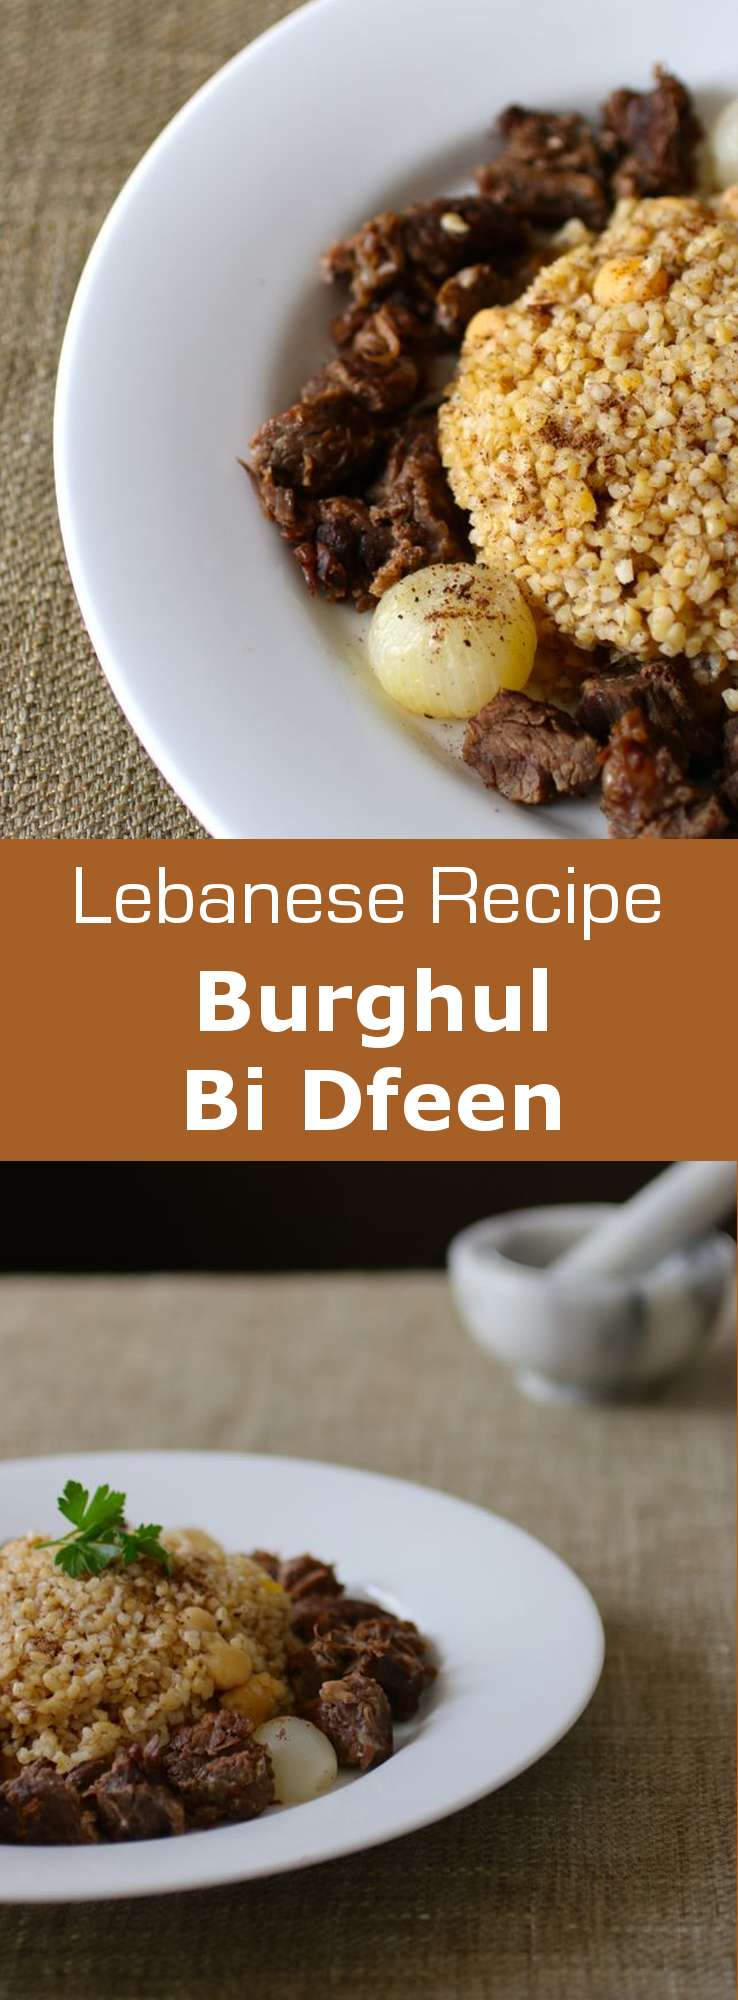 Discover burghul bi dfeen, an authentic Lebanese recipe based on bulgur and chickpeas which is usually served with yogurt. #lebanon #196flavors